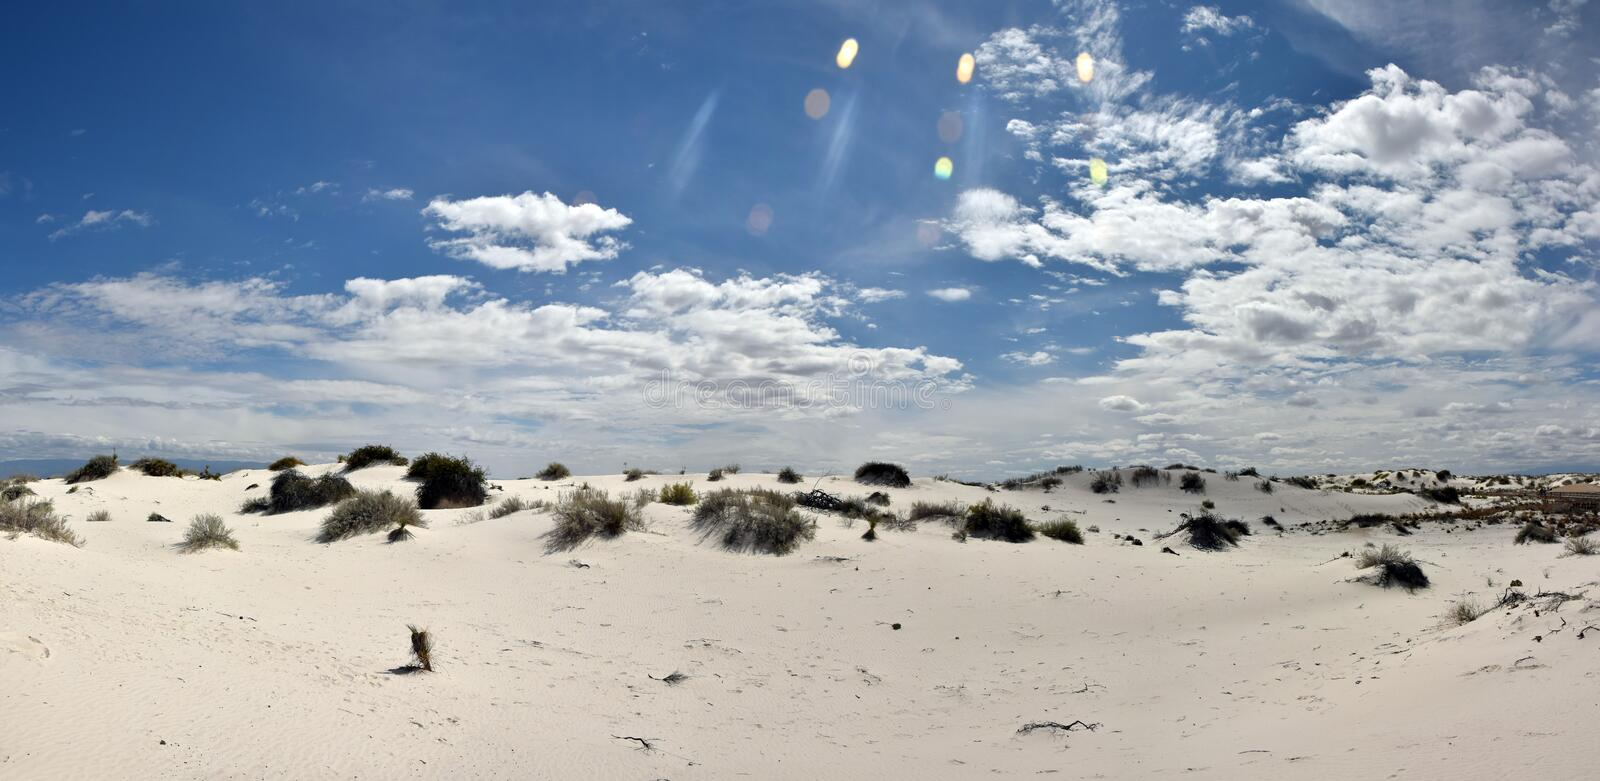 White sands in New Mexico. White Sands National Monument, dunes in New Mexico wilderness. Panoramic high resolution view royalty free stock photography